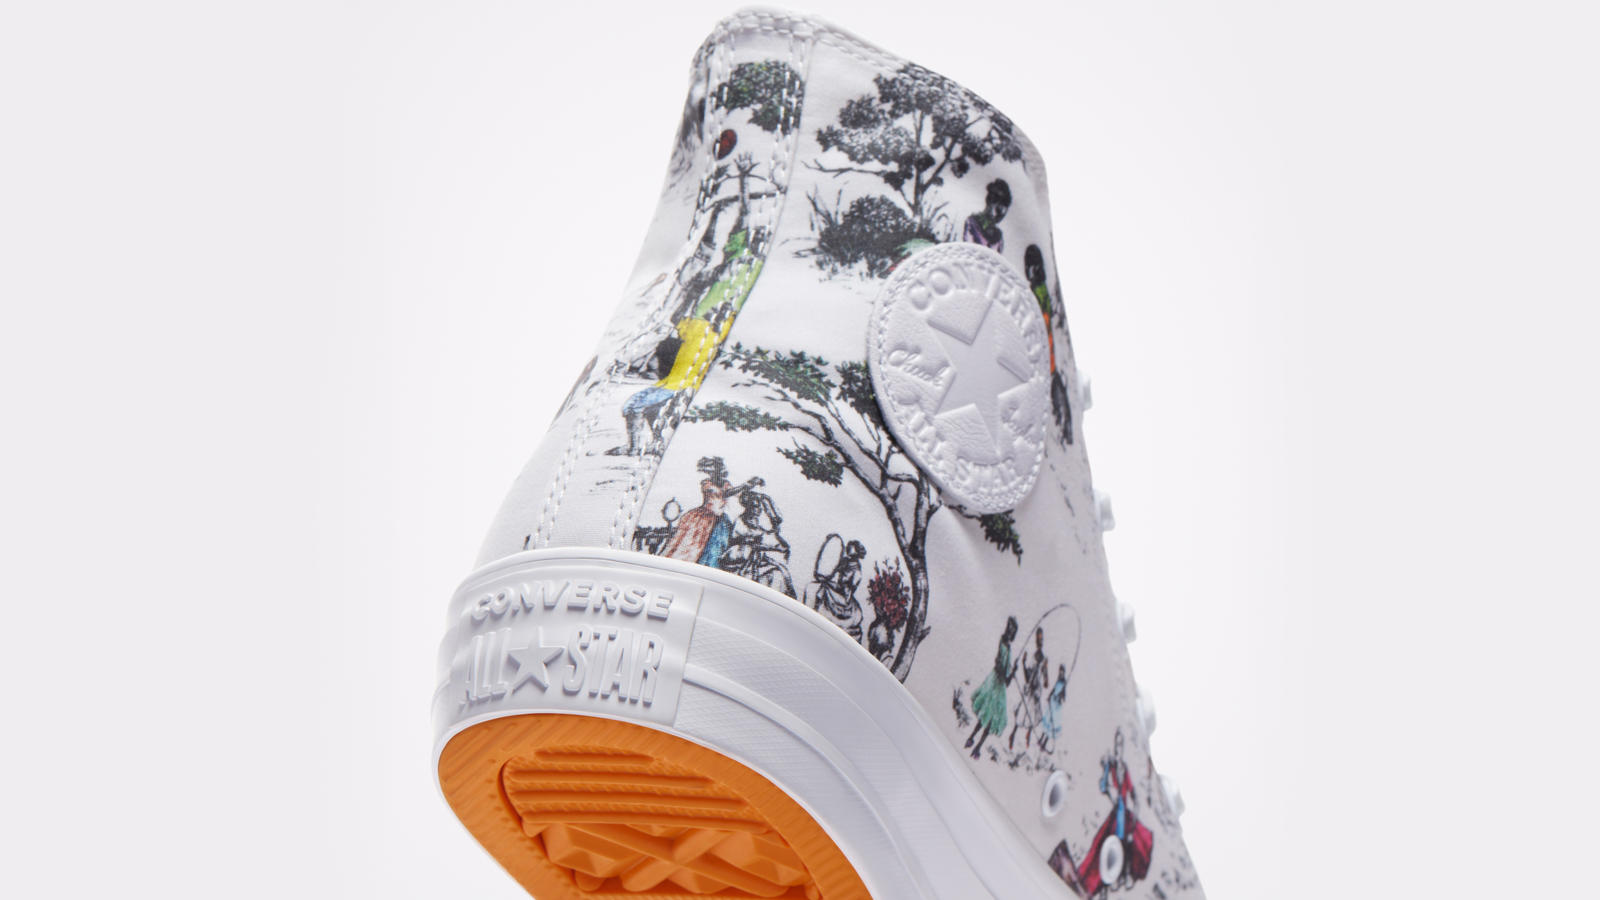 Converse x UNION x Sheila Bridges Harlem Toile Collaboration 8